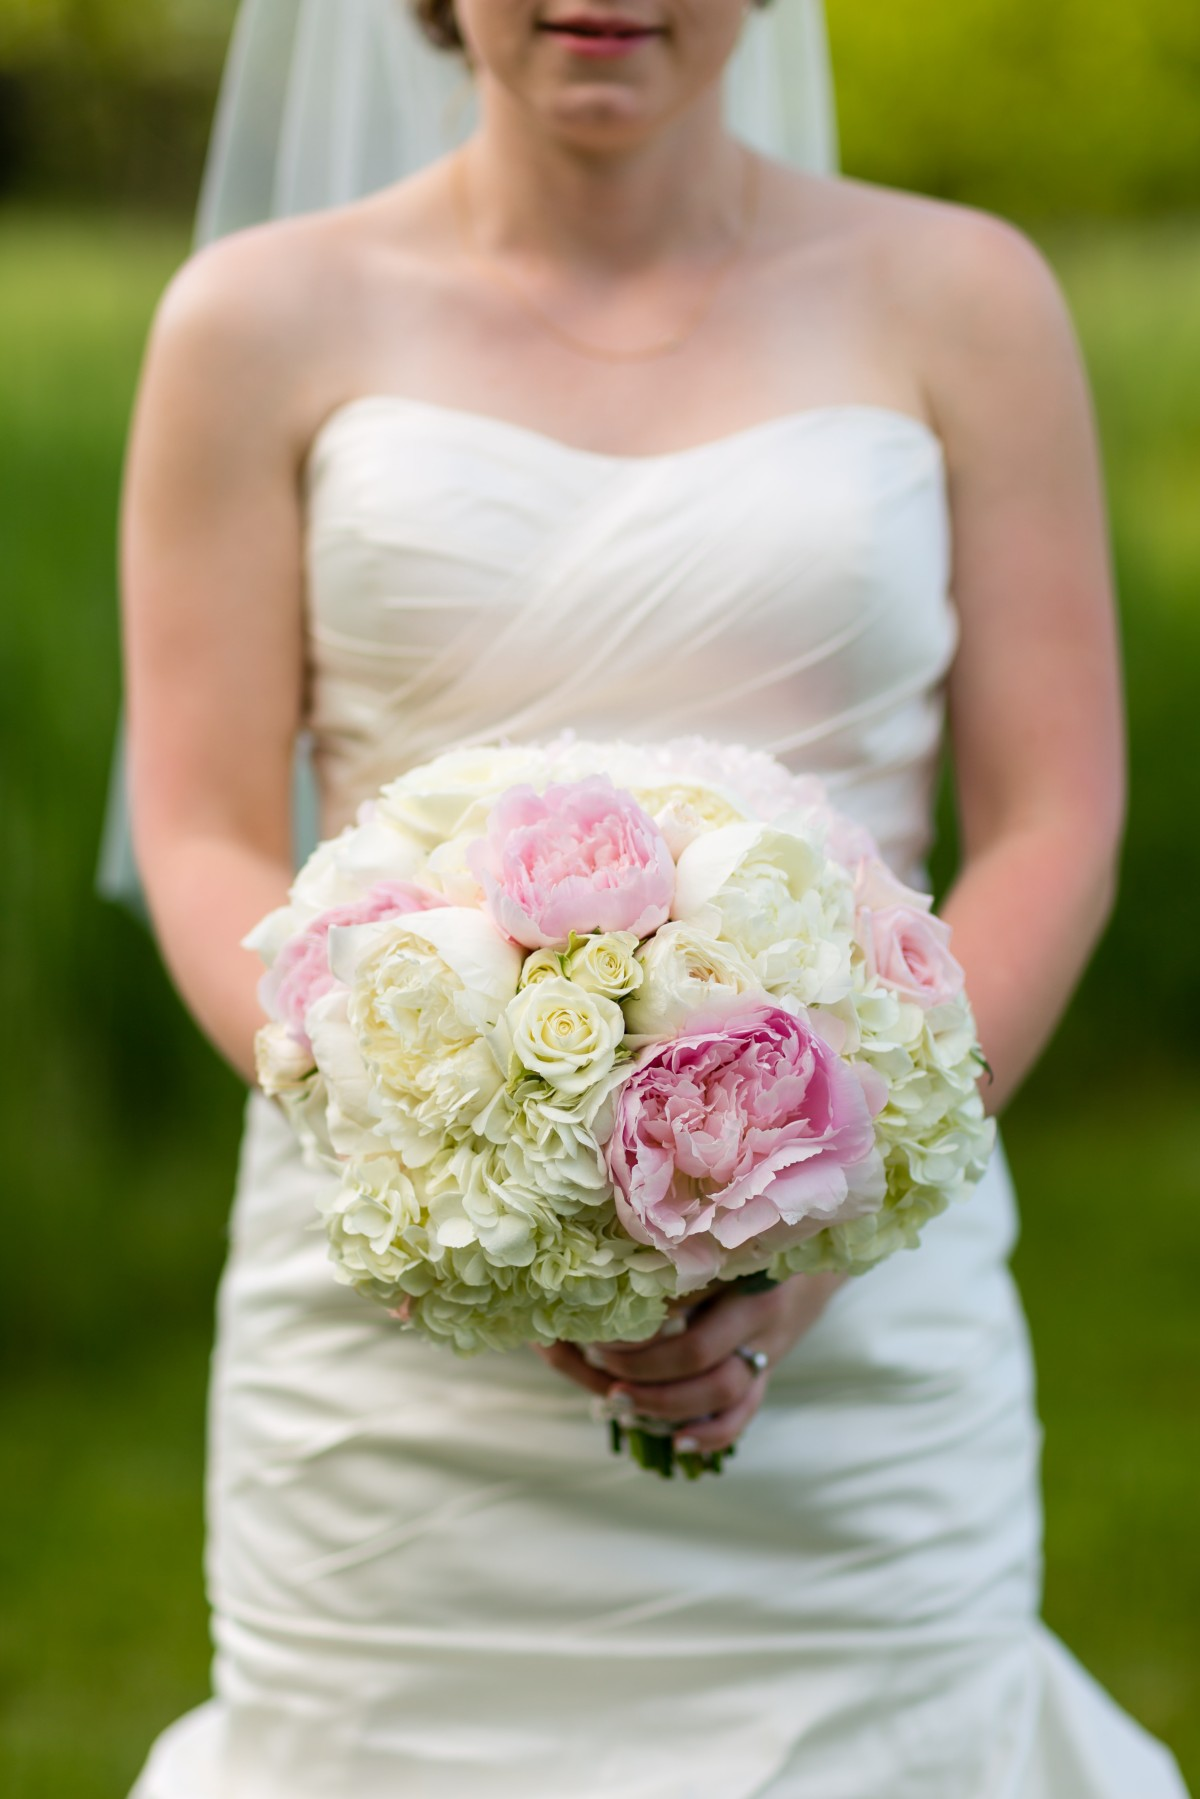 Flanagan Farm Wedding Bridal Bouquet